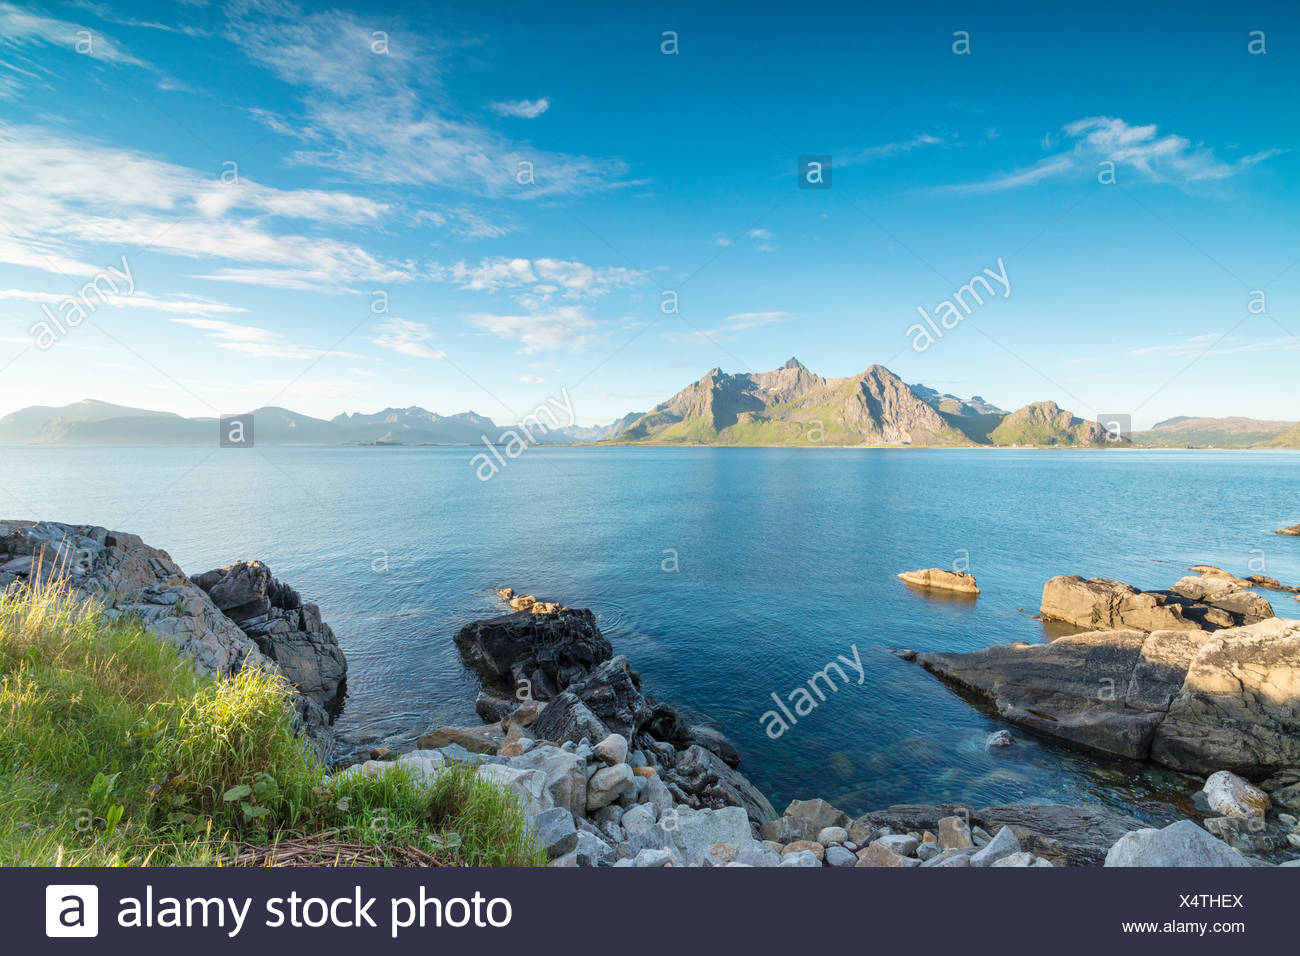 Sun shines on the blue sea and the rocky peaks at night during summer Vikten Nord Trøndelag Lofoten Islands Norway Europe - Stock Image